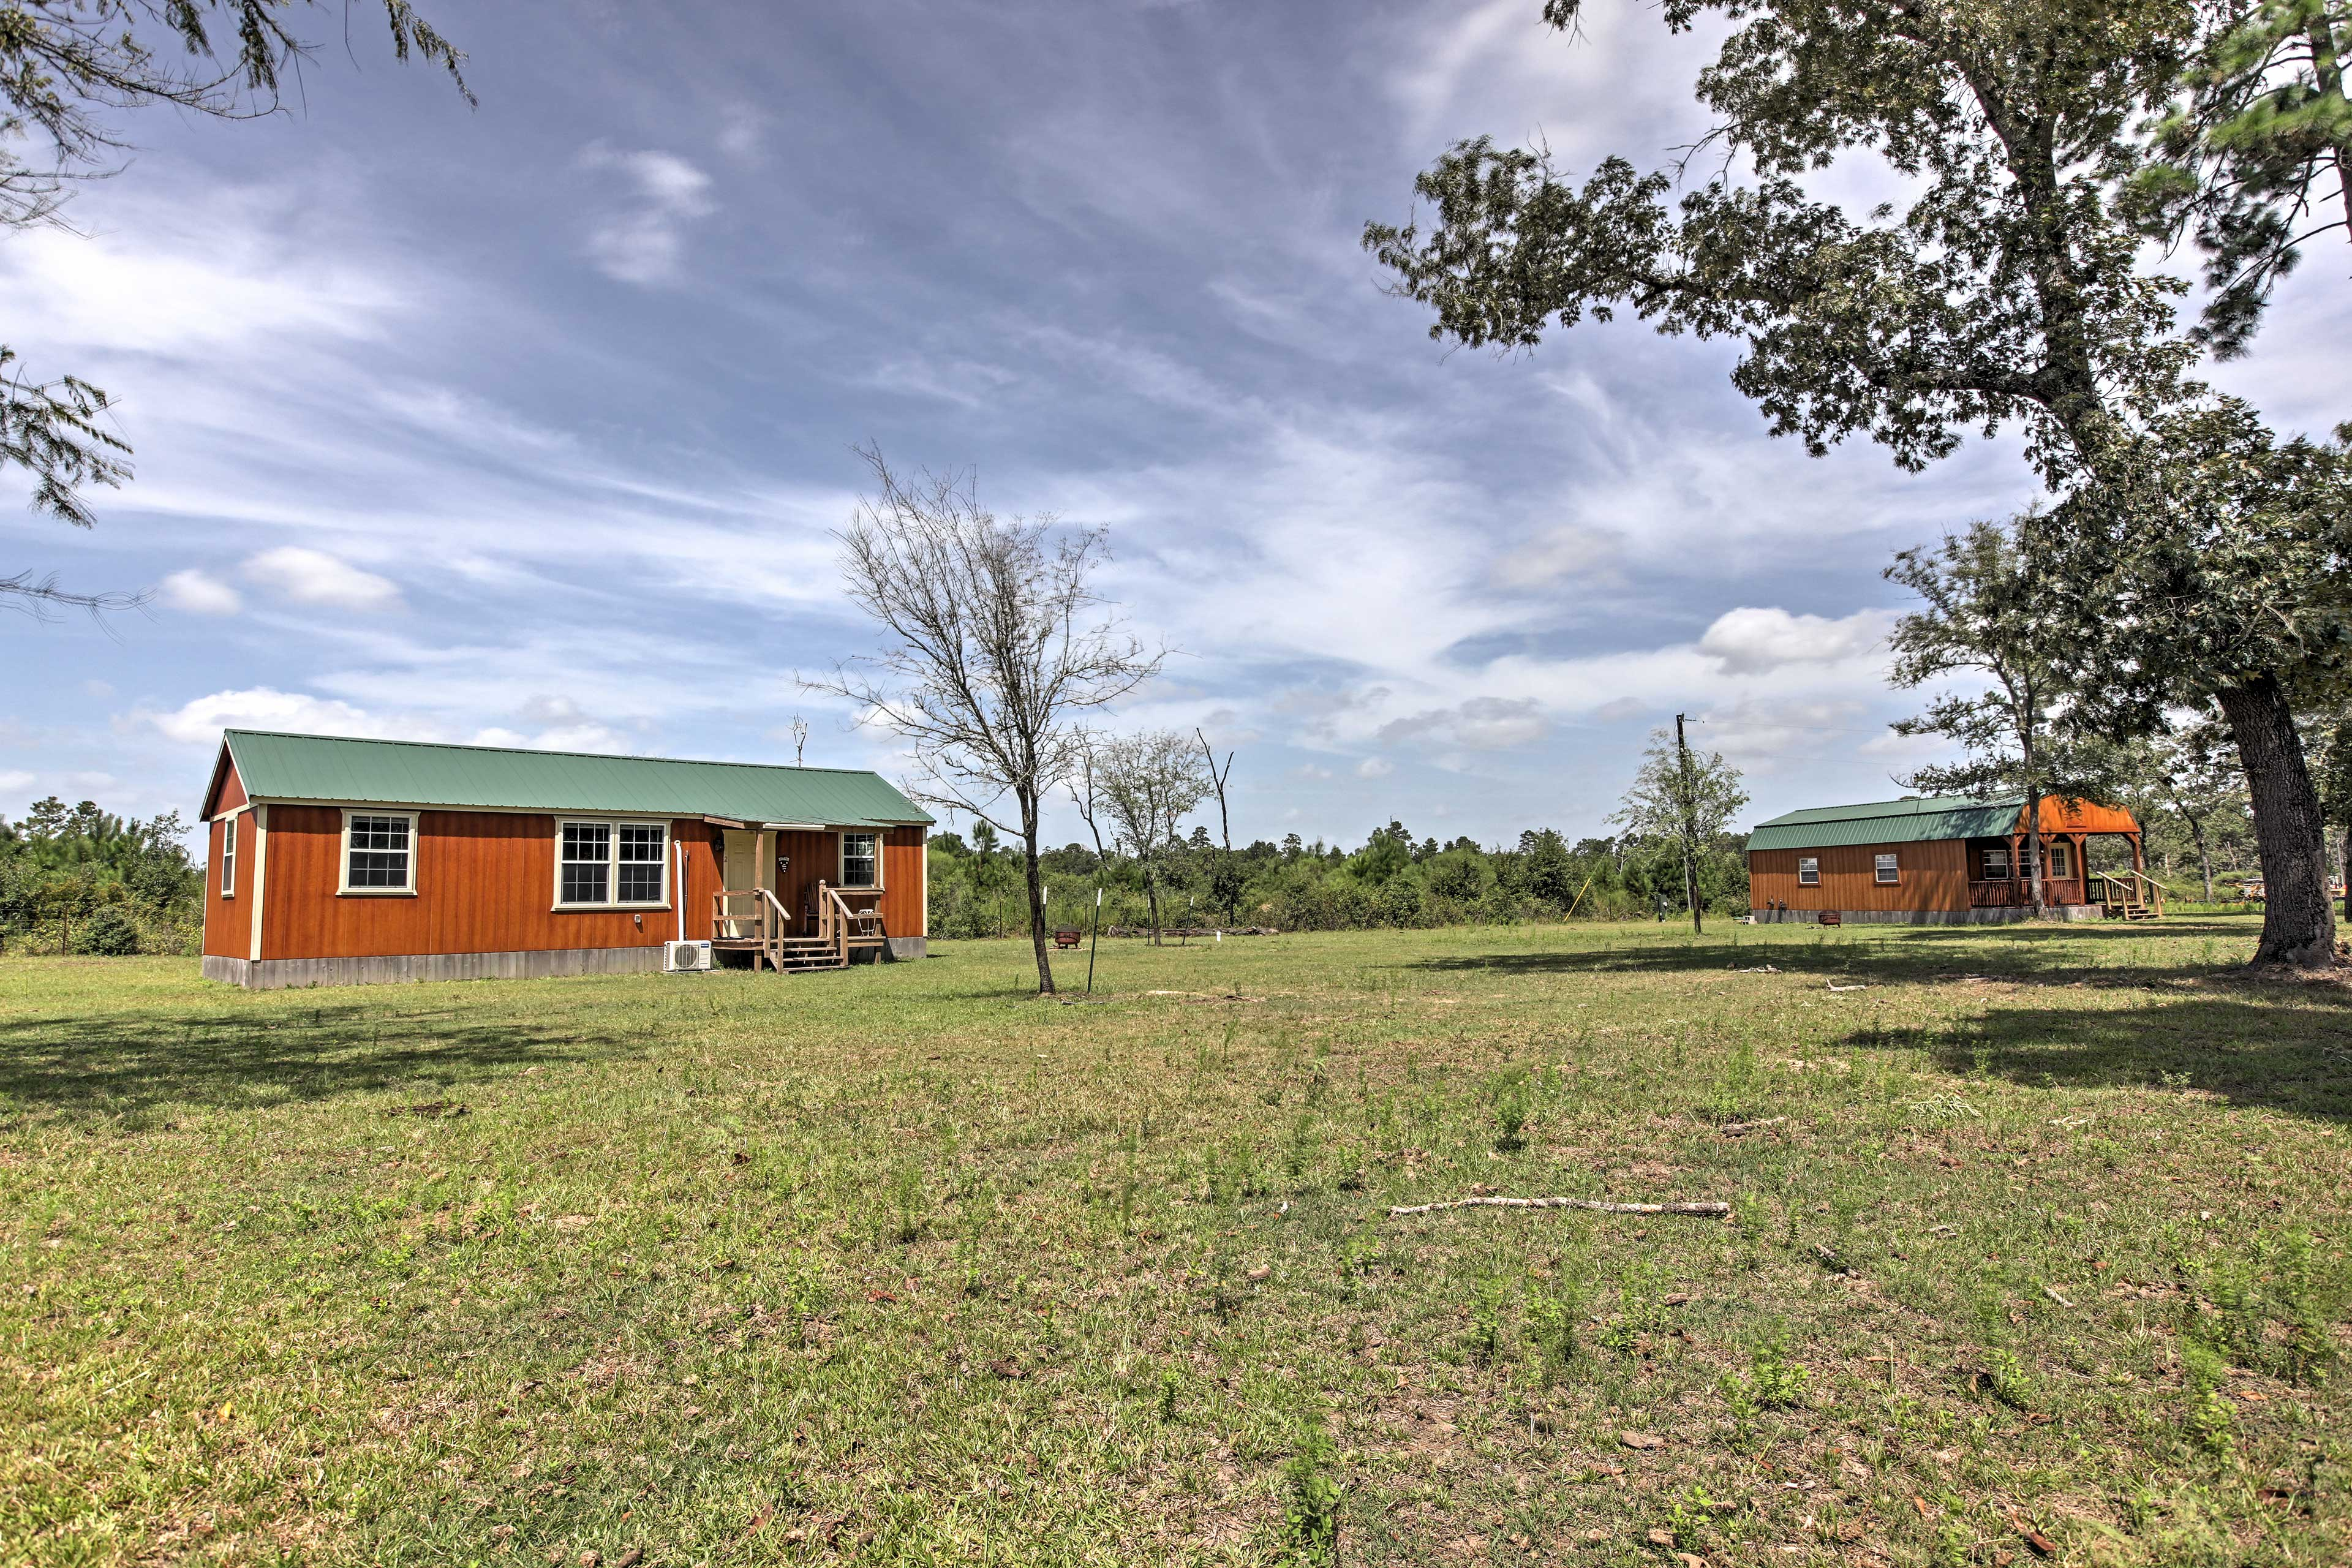 You'll find tons of privacy while staying in this charming Texas cabin.